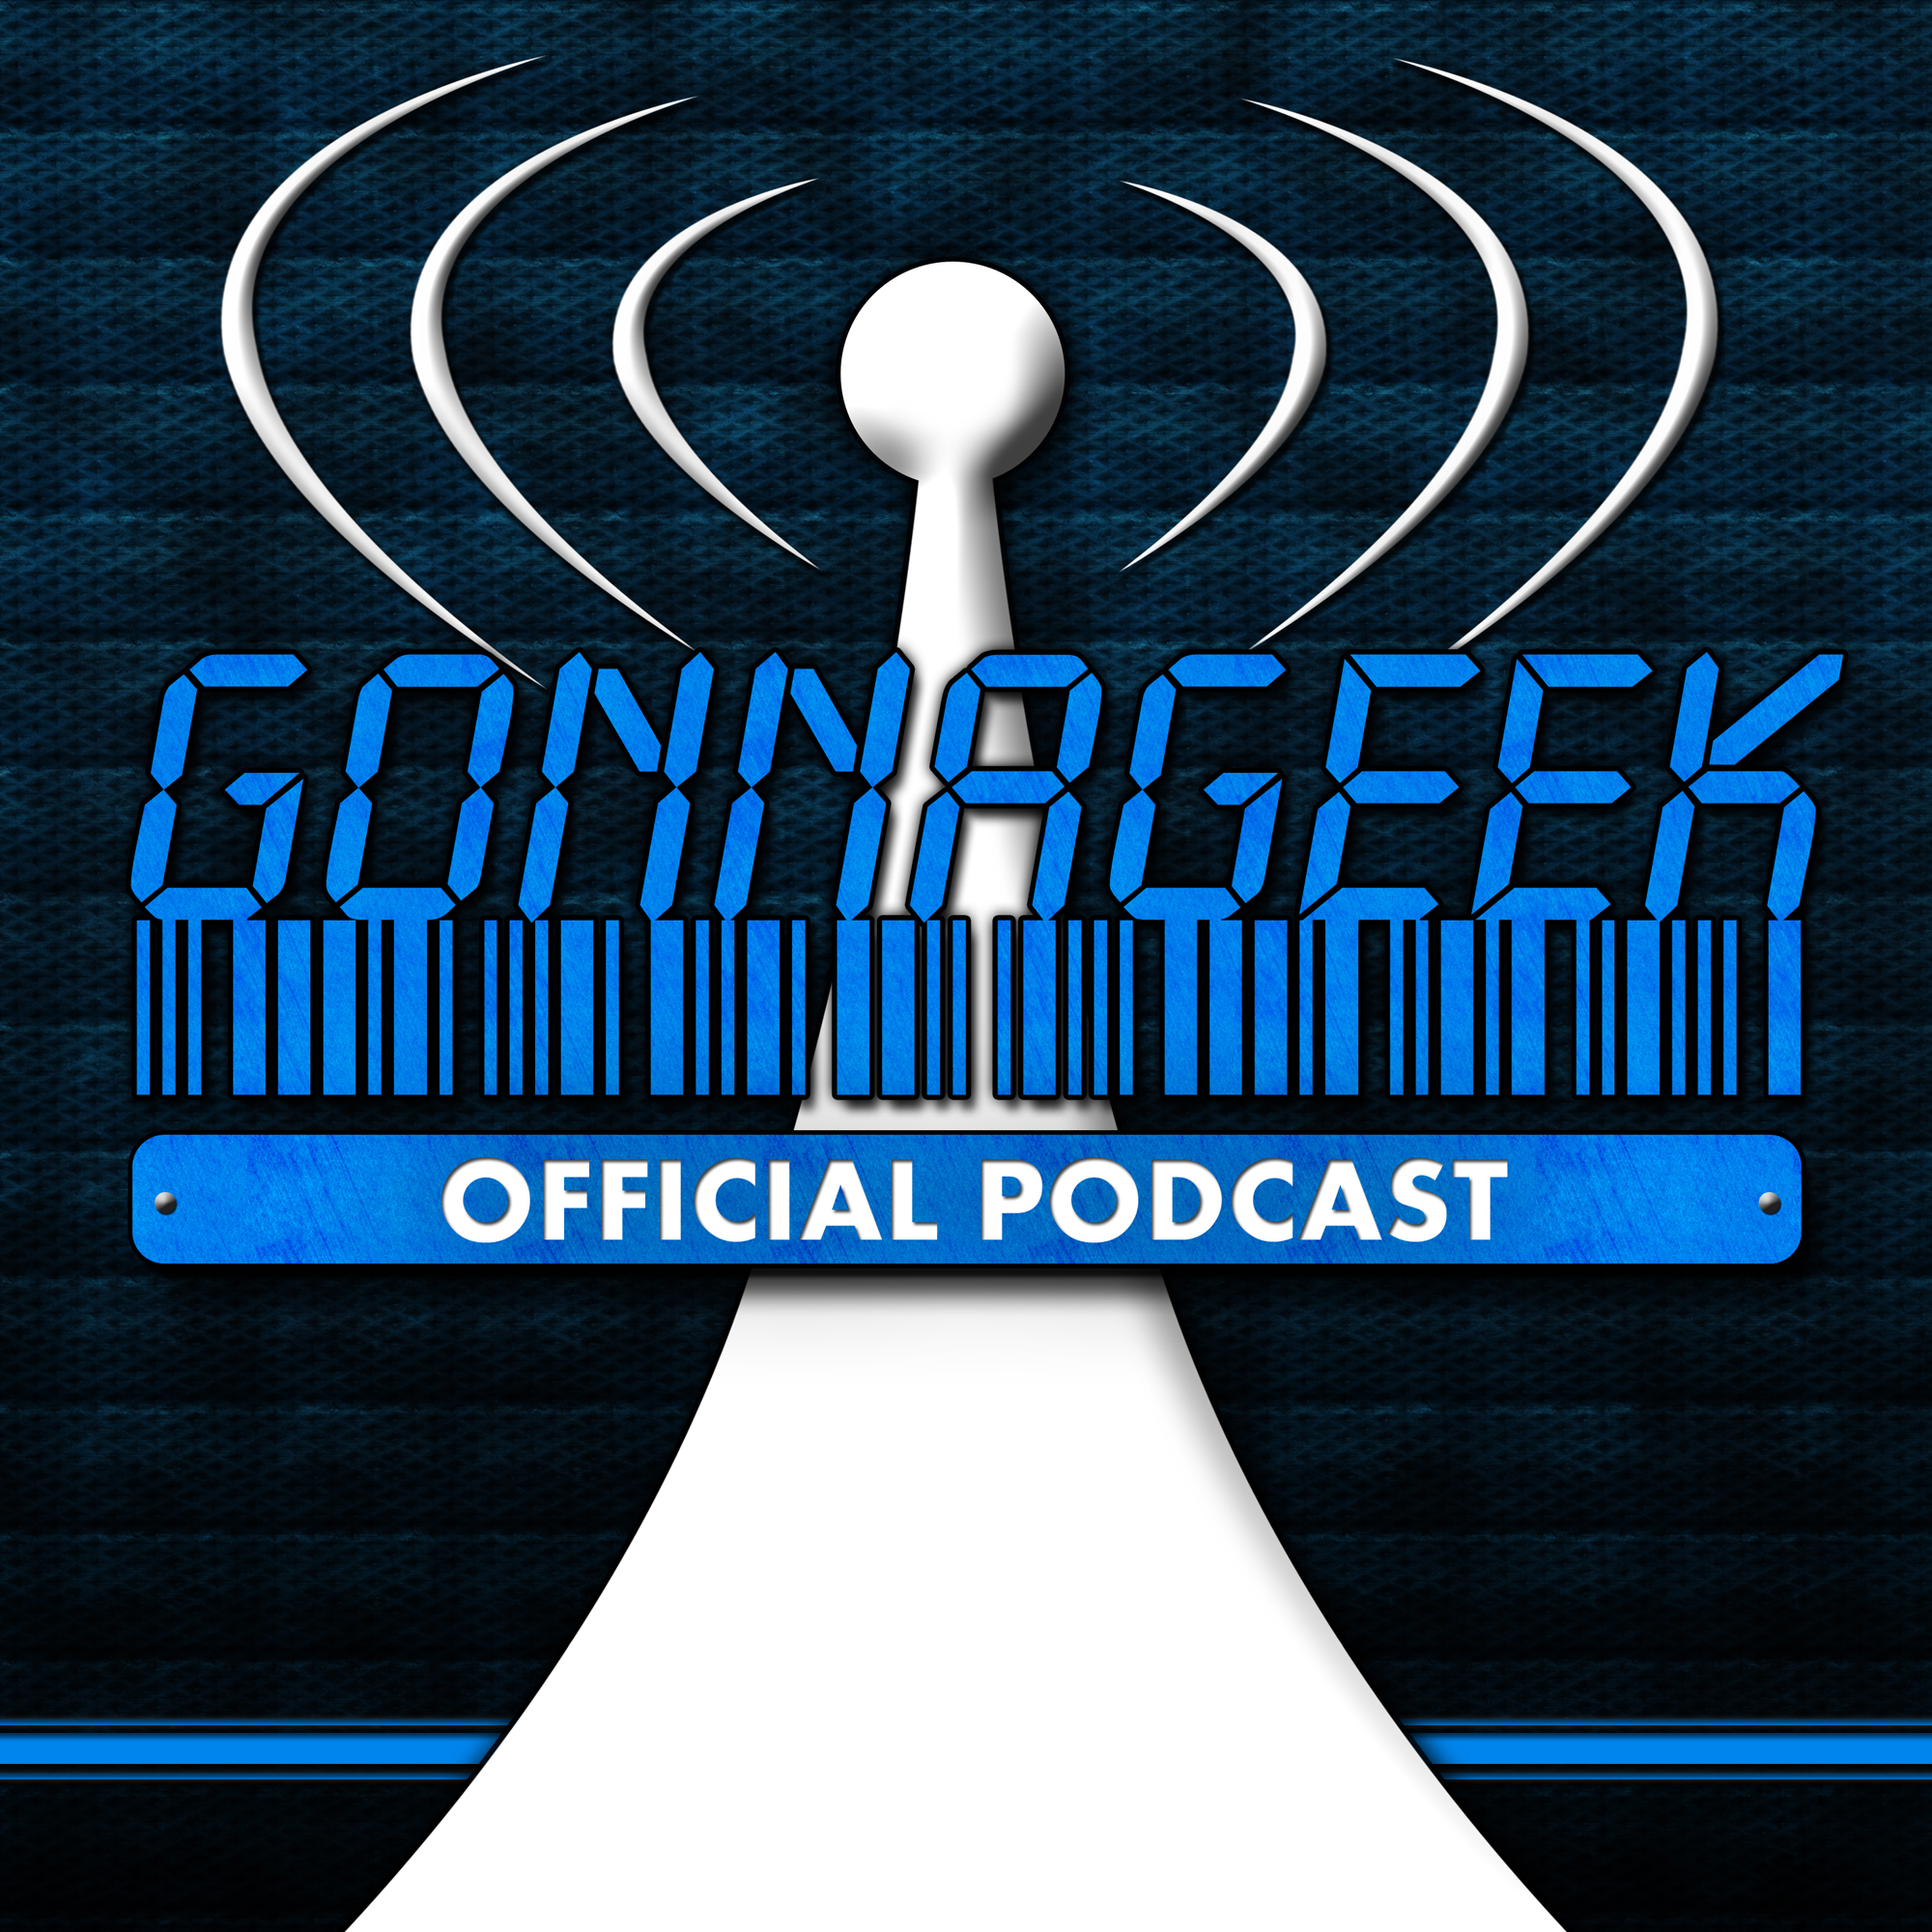 GonnaGeek.com Official Podcast - Tech, Scifi, Gaming and More